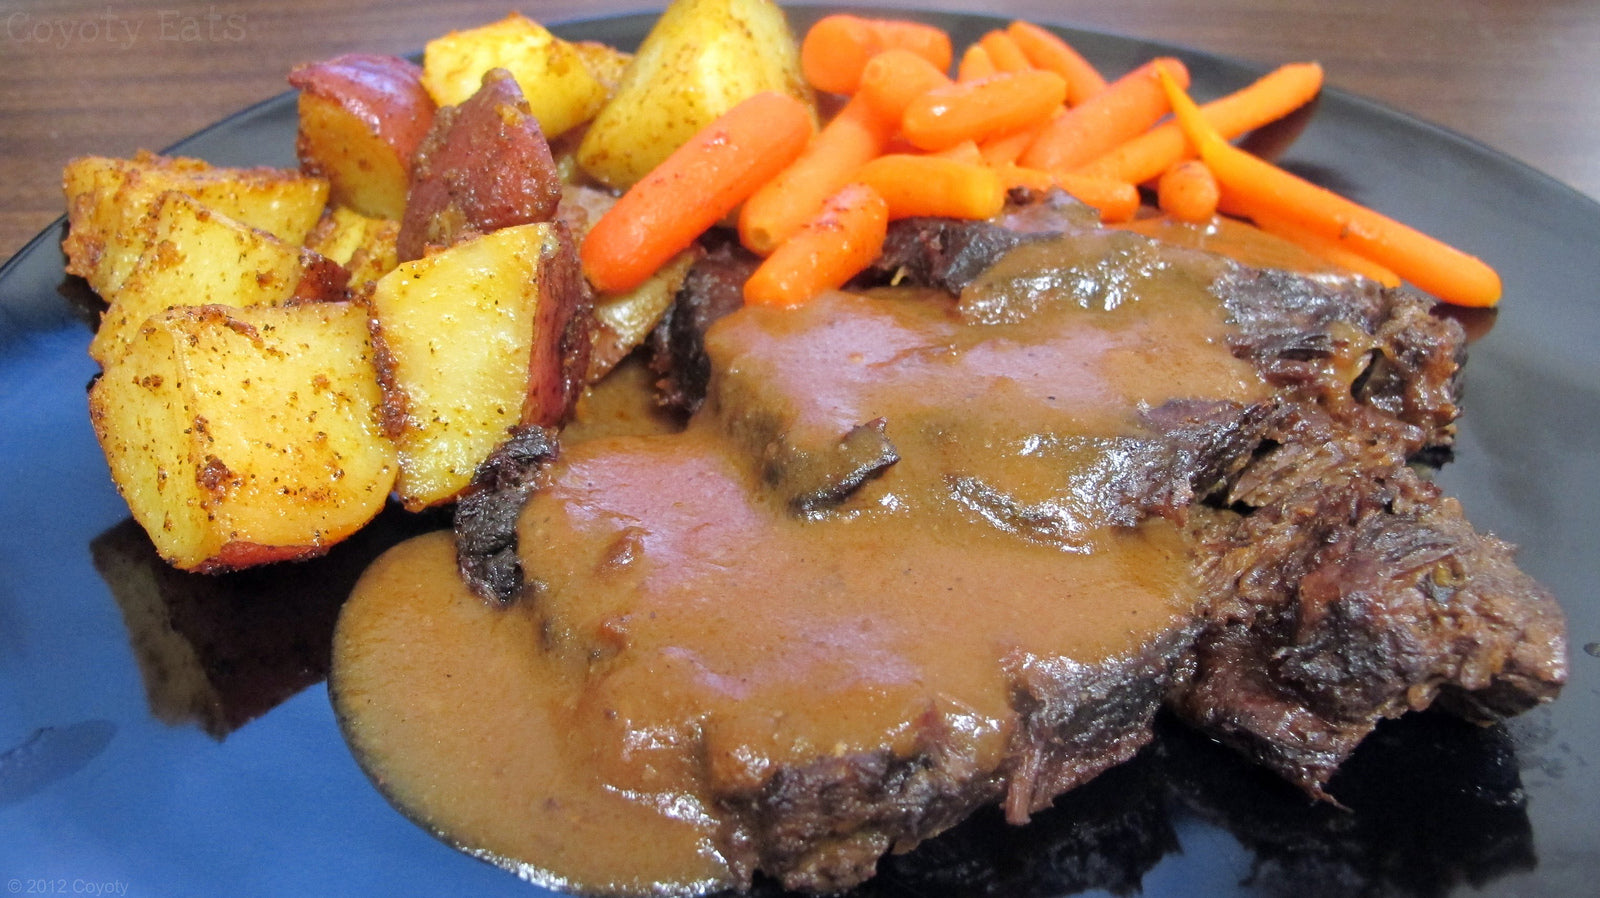 Incredible Pot Roast Dianne with Homemade Gravy